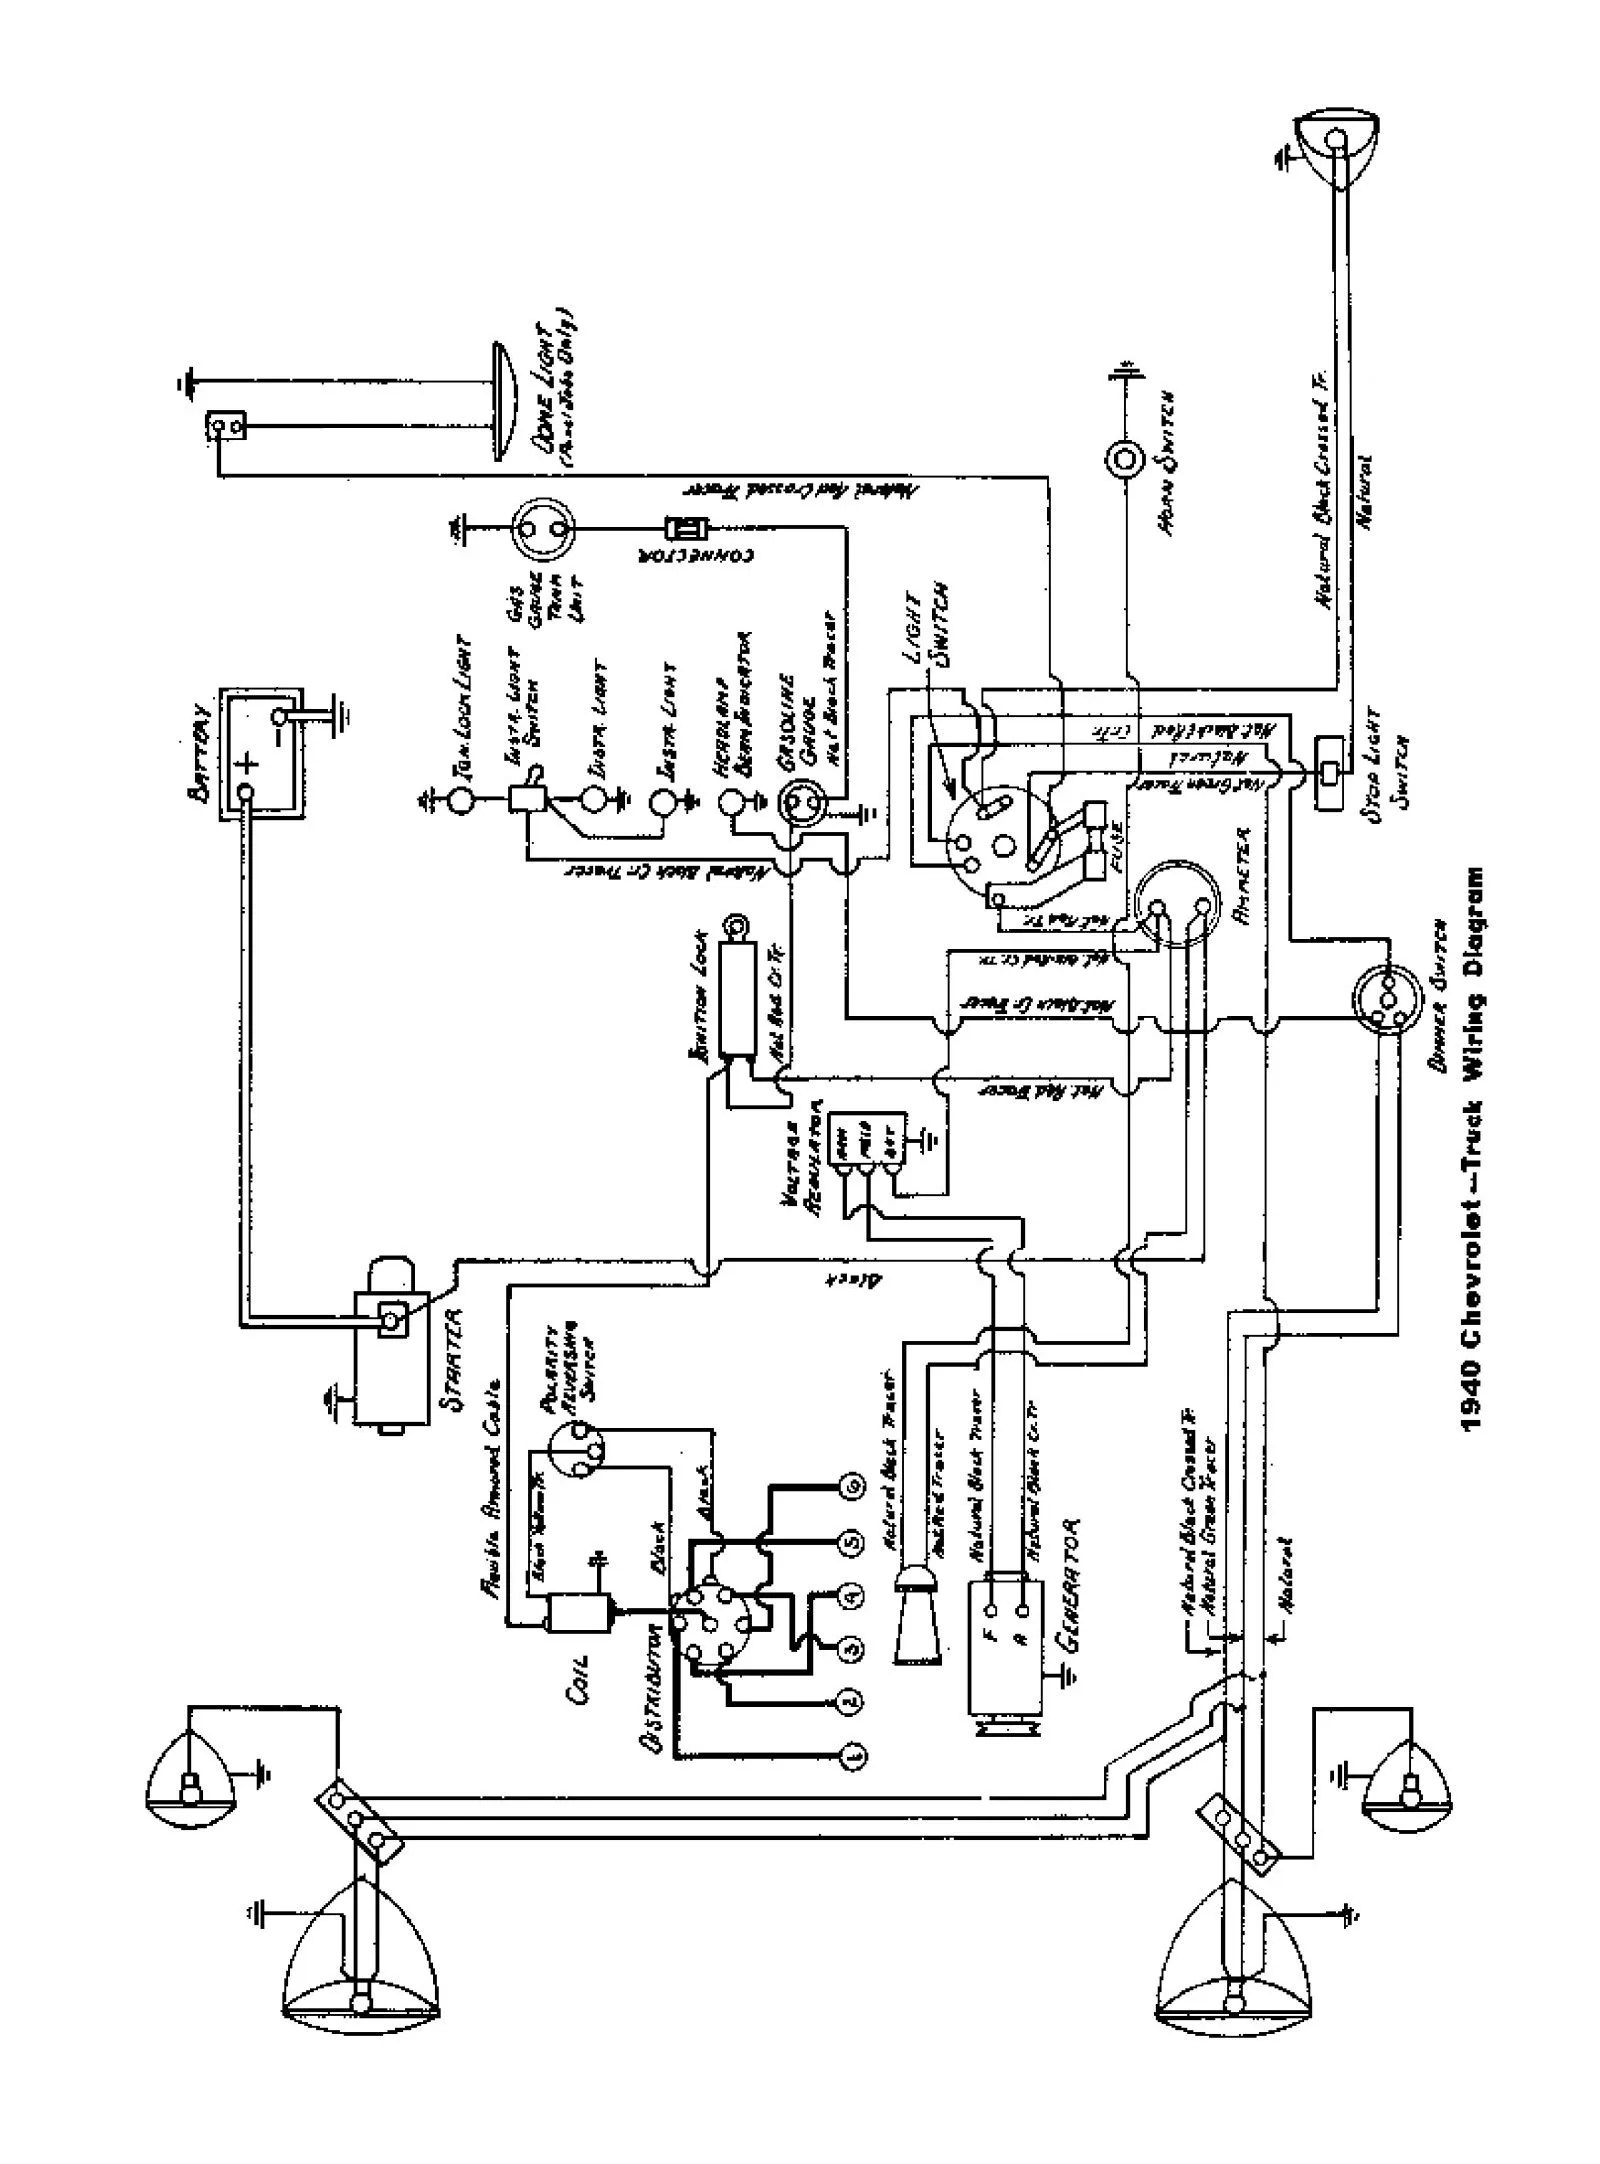 hight resolution of 1957 chevy truck dash wiring harness guide wiring diagram featured 57 chevy bel air wiring harness